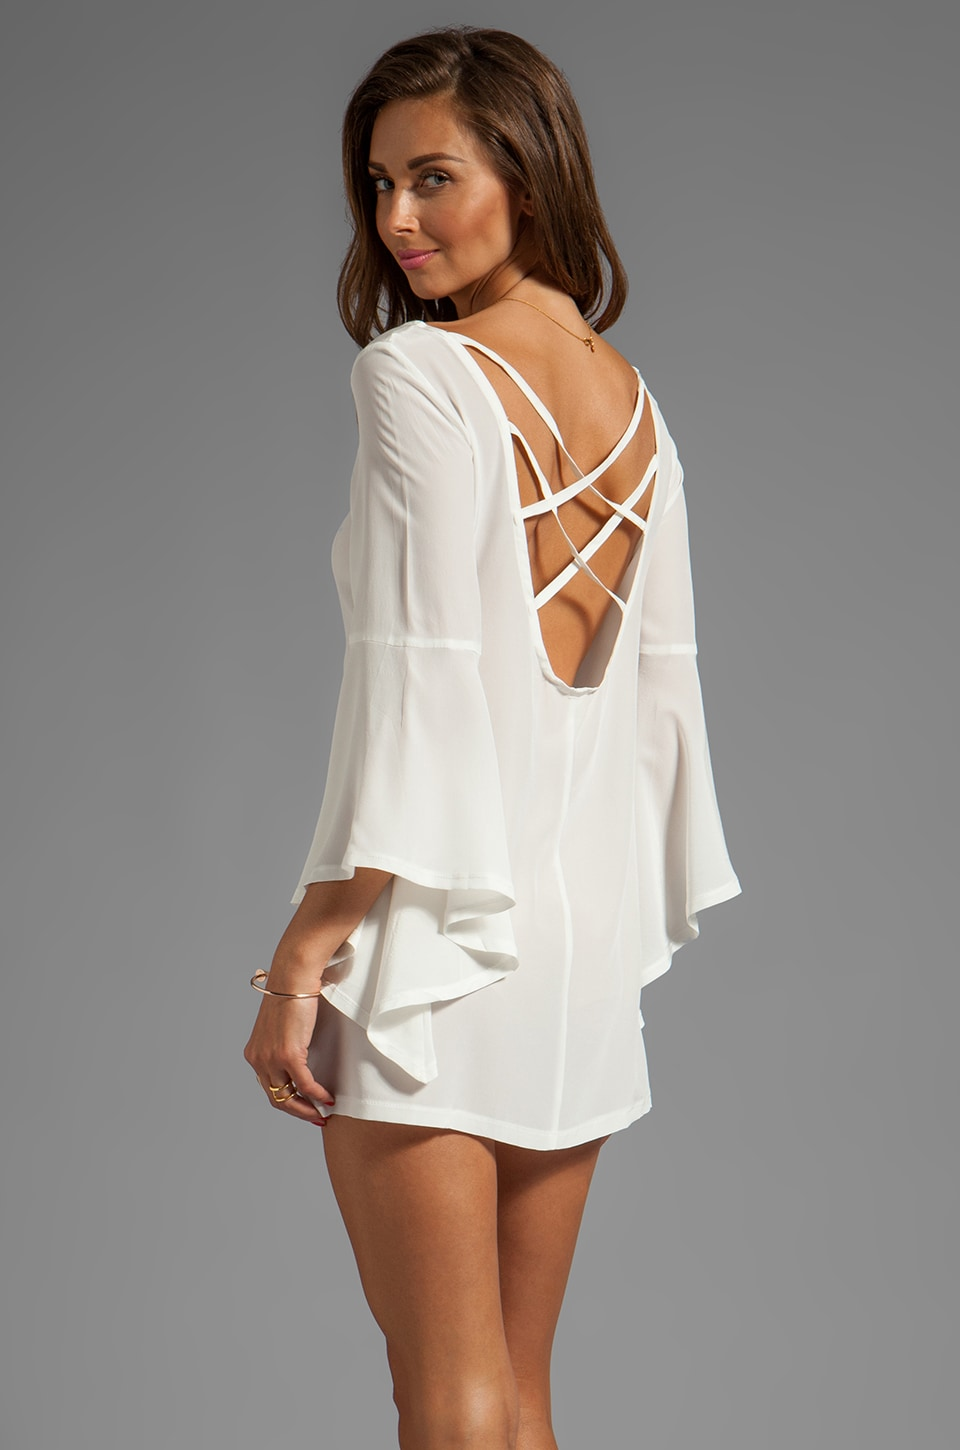 Gypsy Junkies Mini Tunic in White